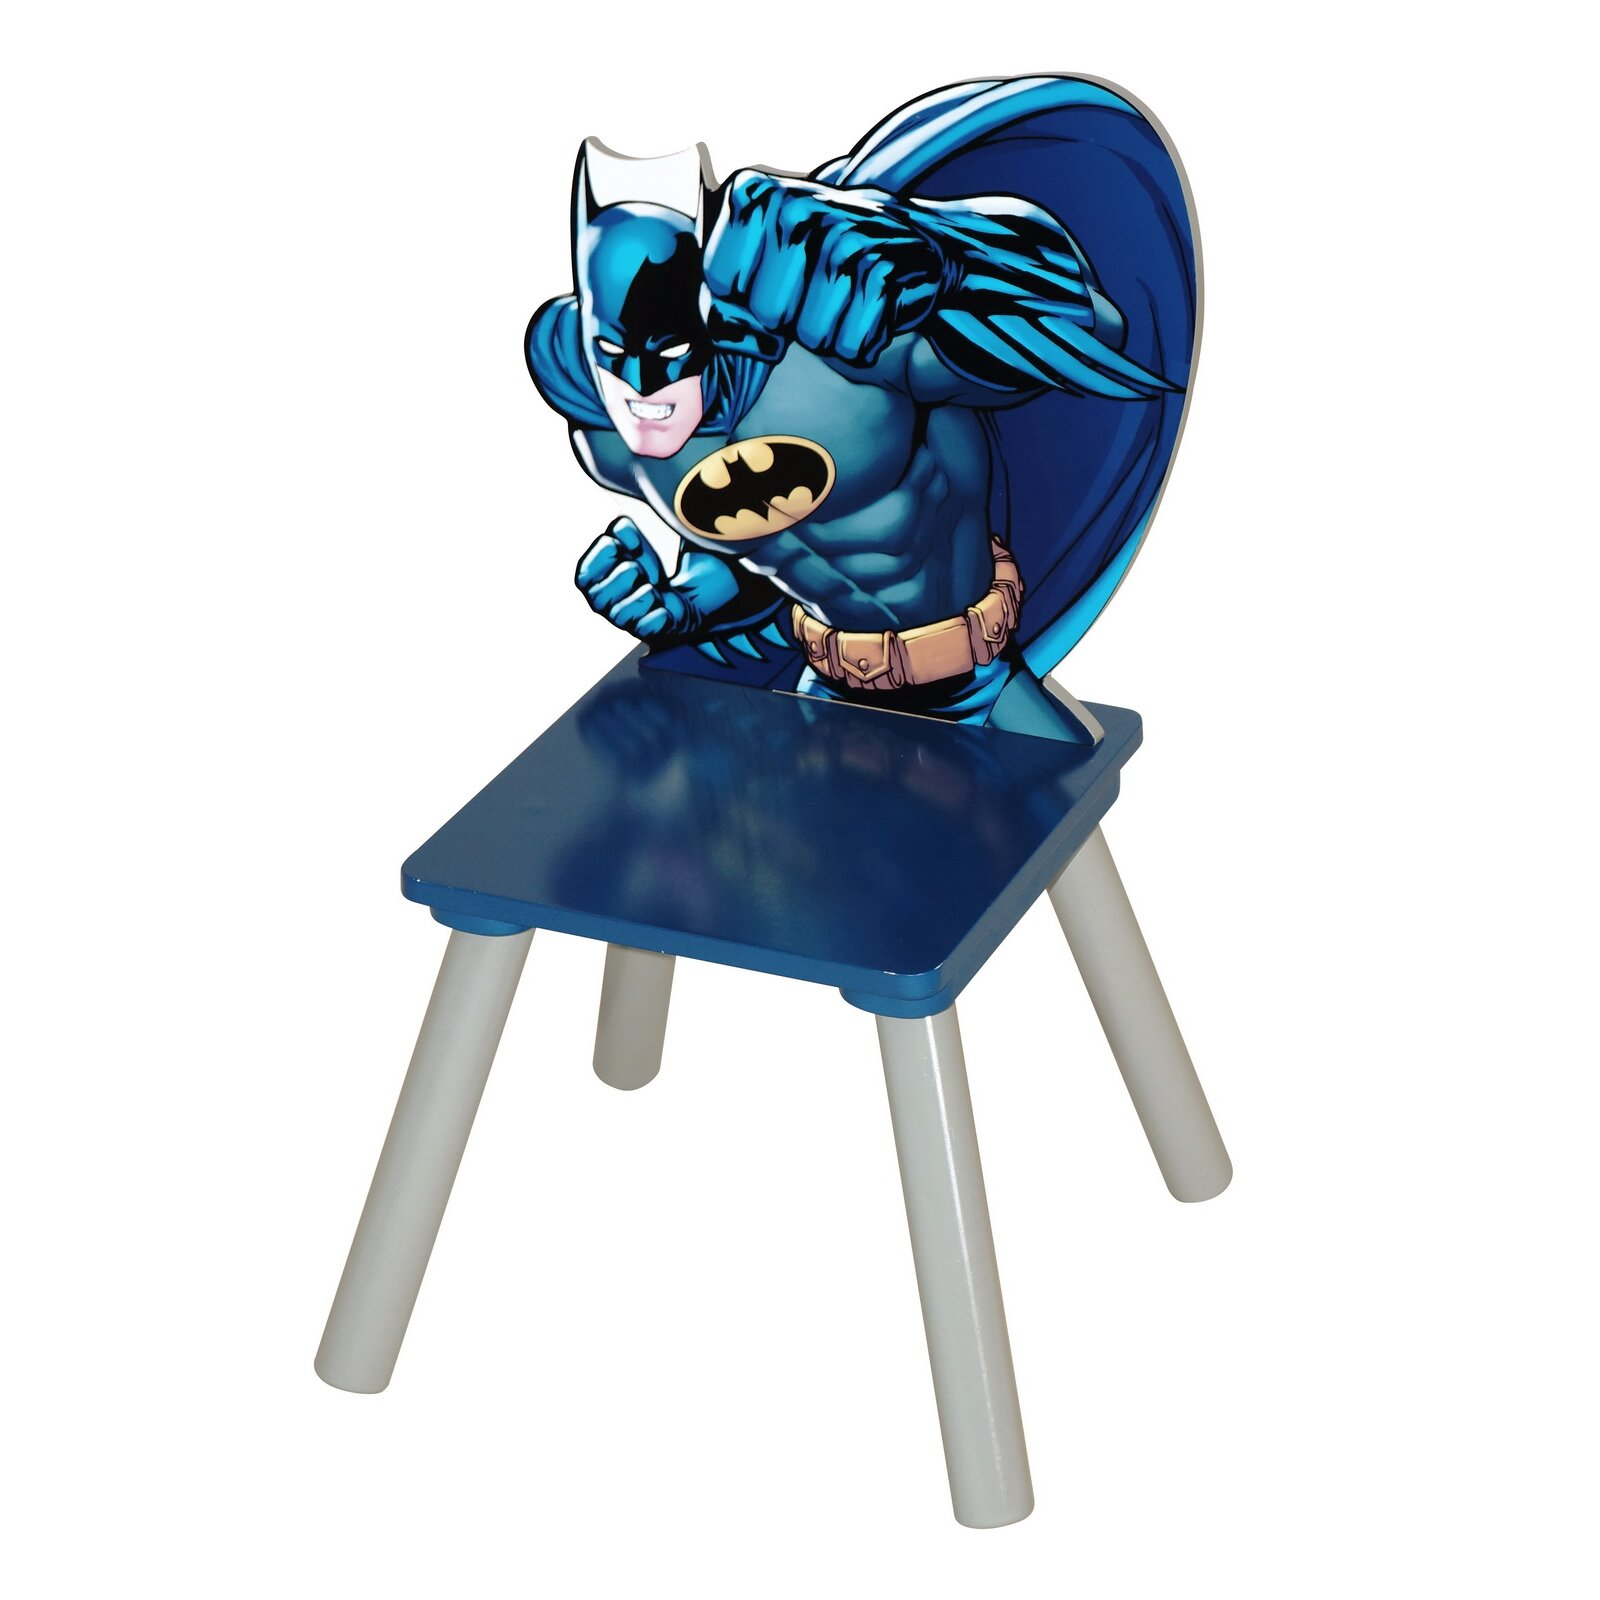 Childrens fice Chair Childrens fice Chair With Childrens